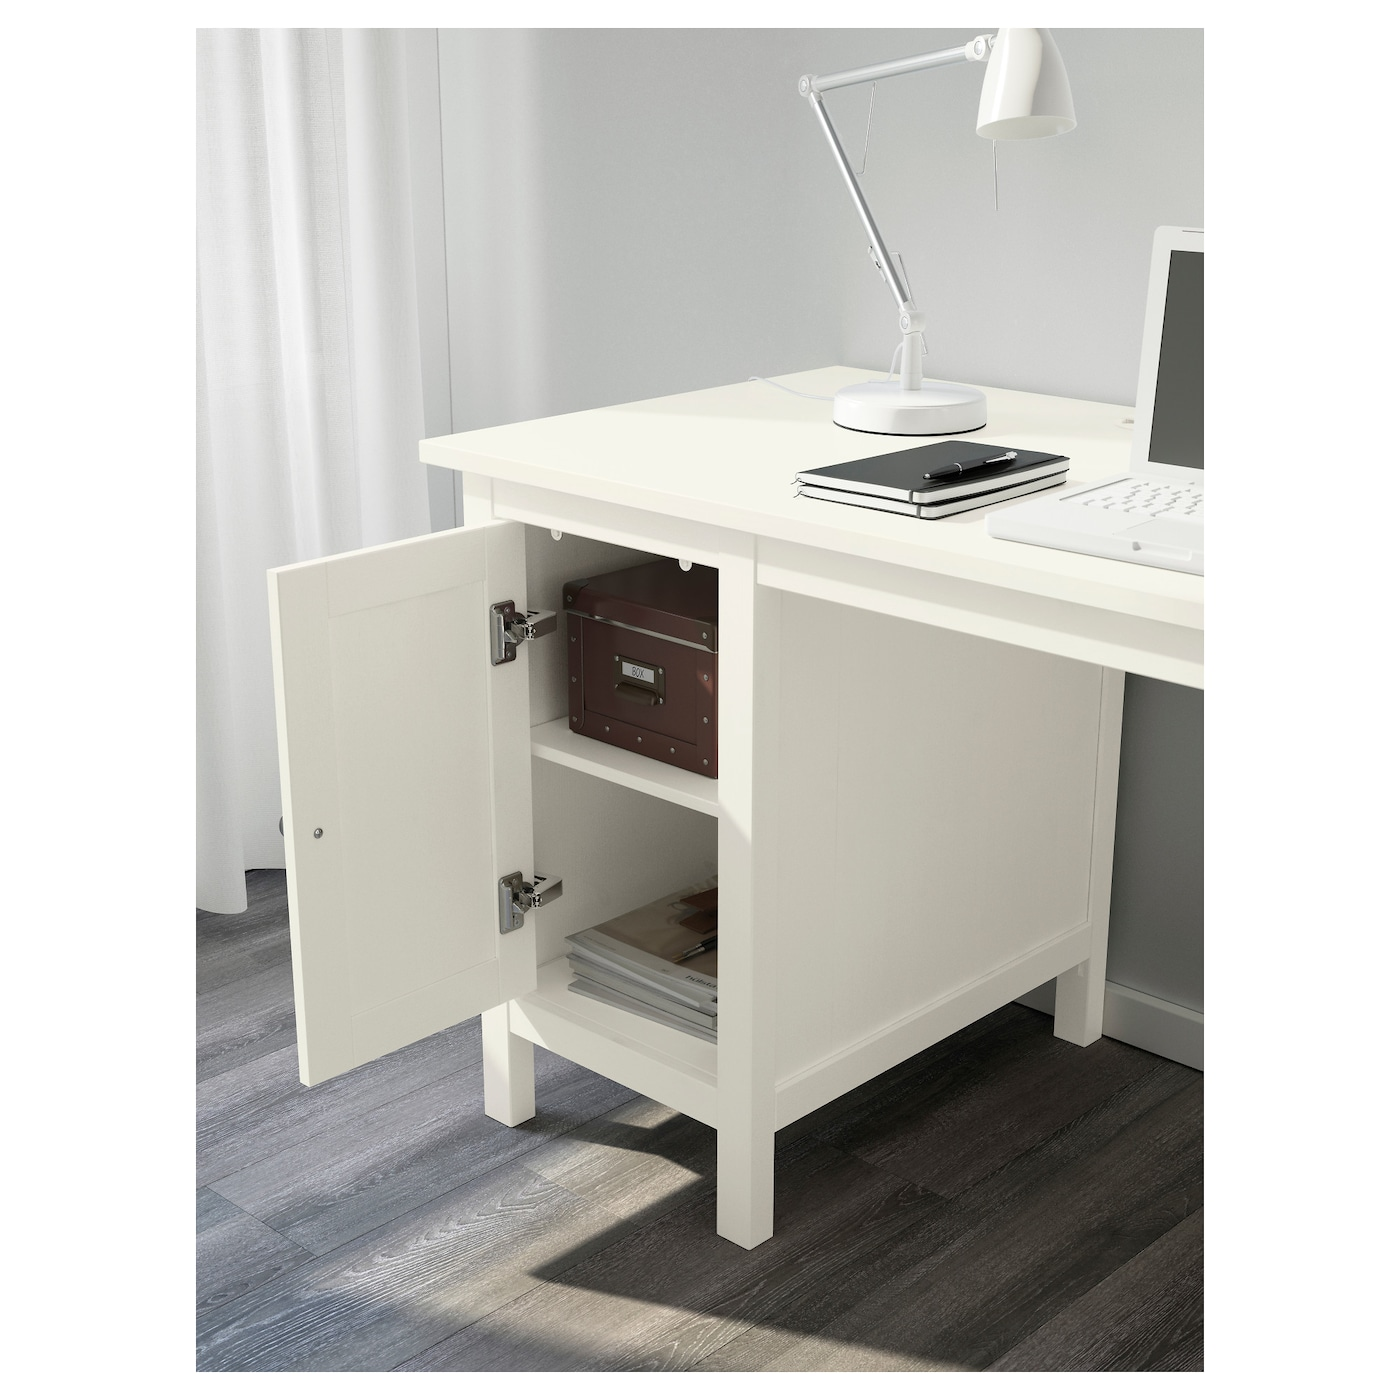 Superbe IKEA HEMNES Desk Cable Outlet For Easy Cable Management. Solid Wood Is A  Durable Natural